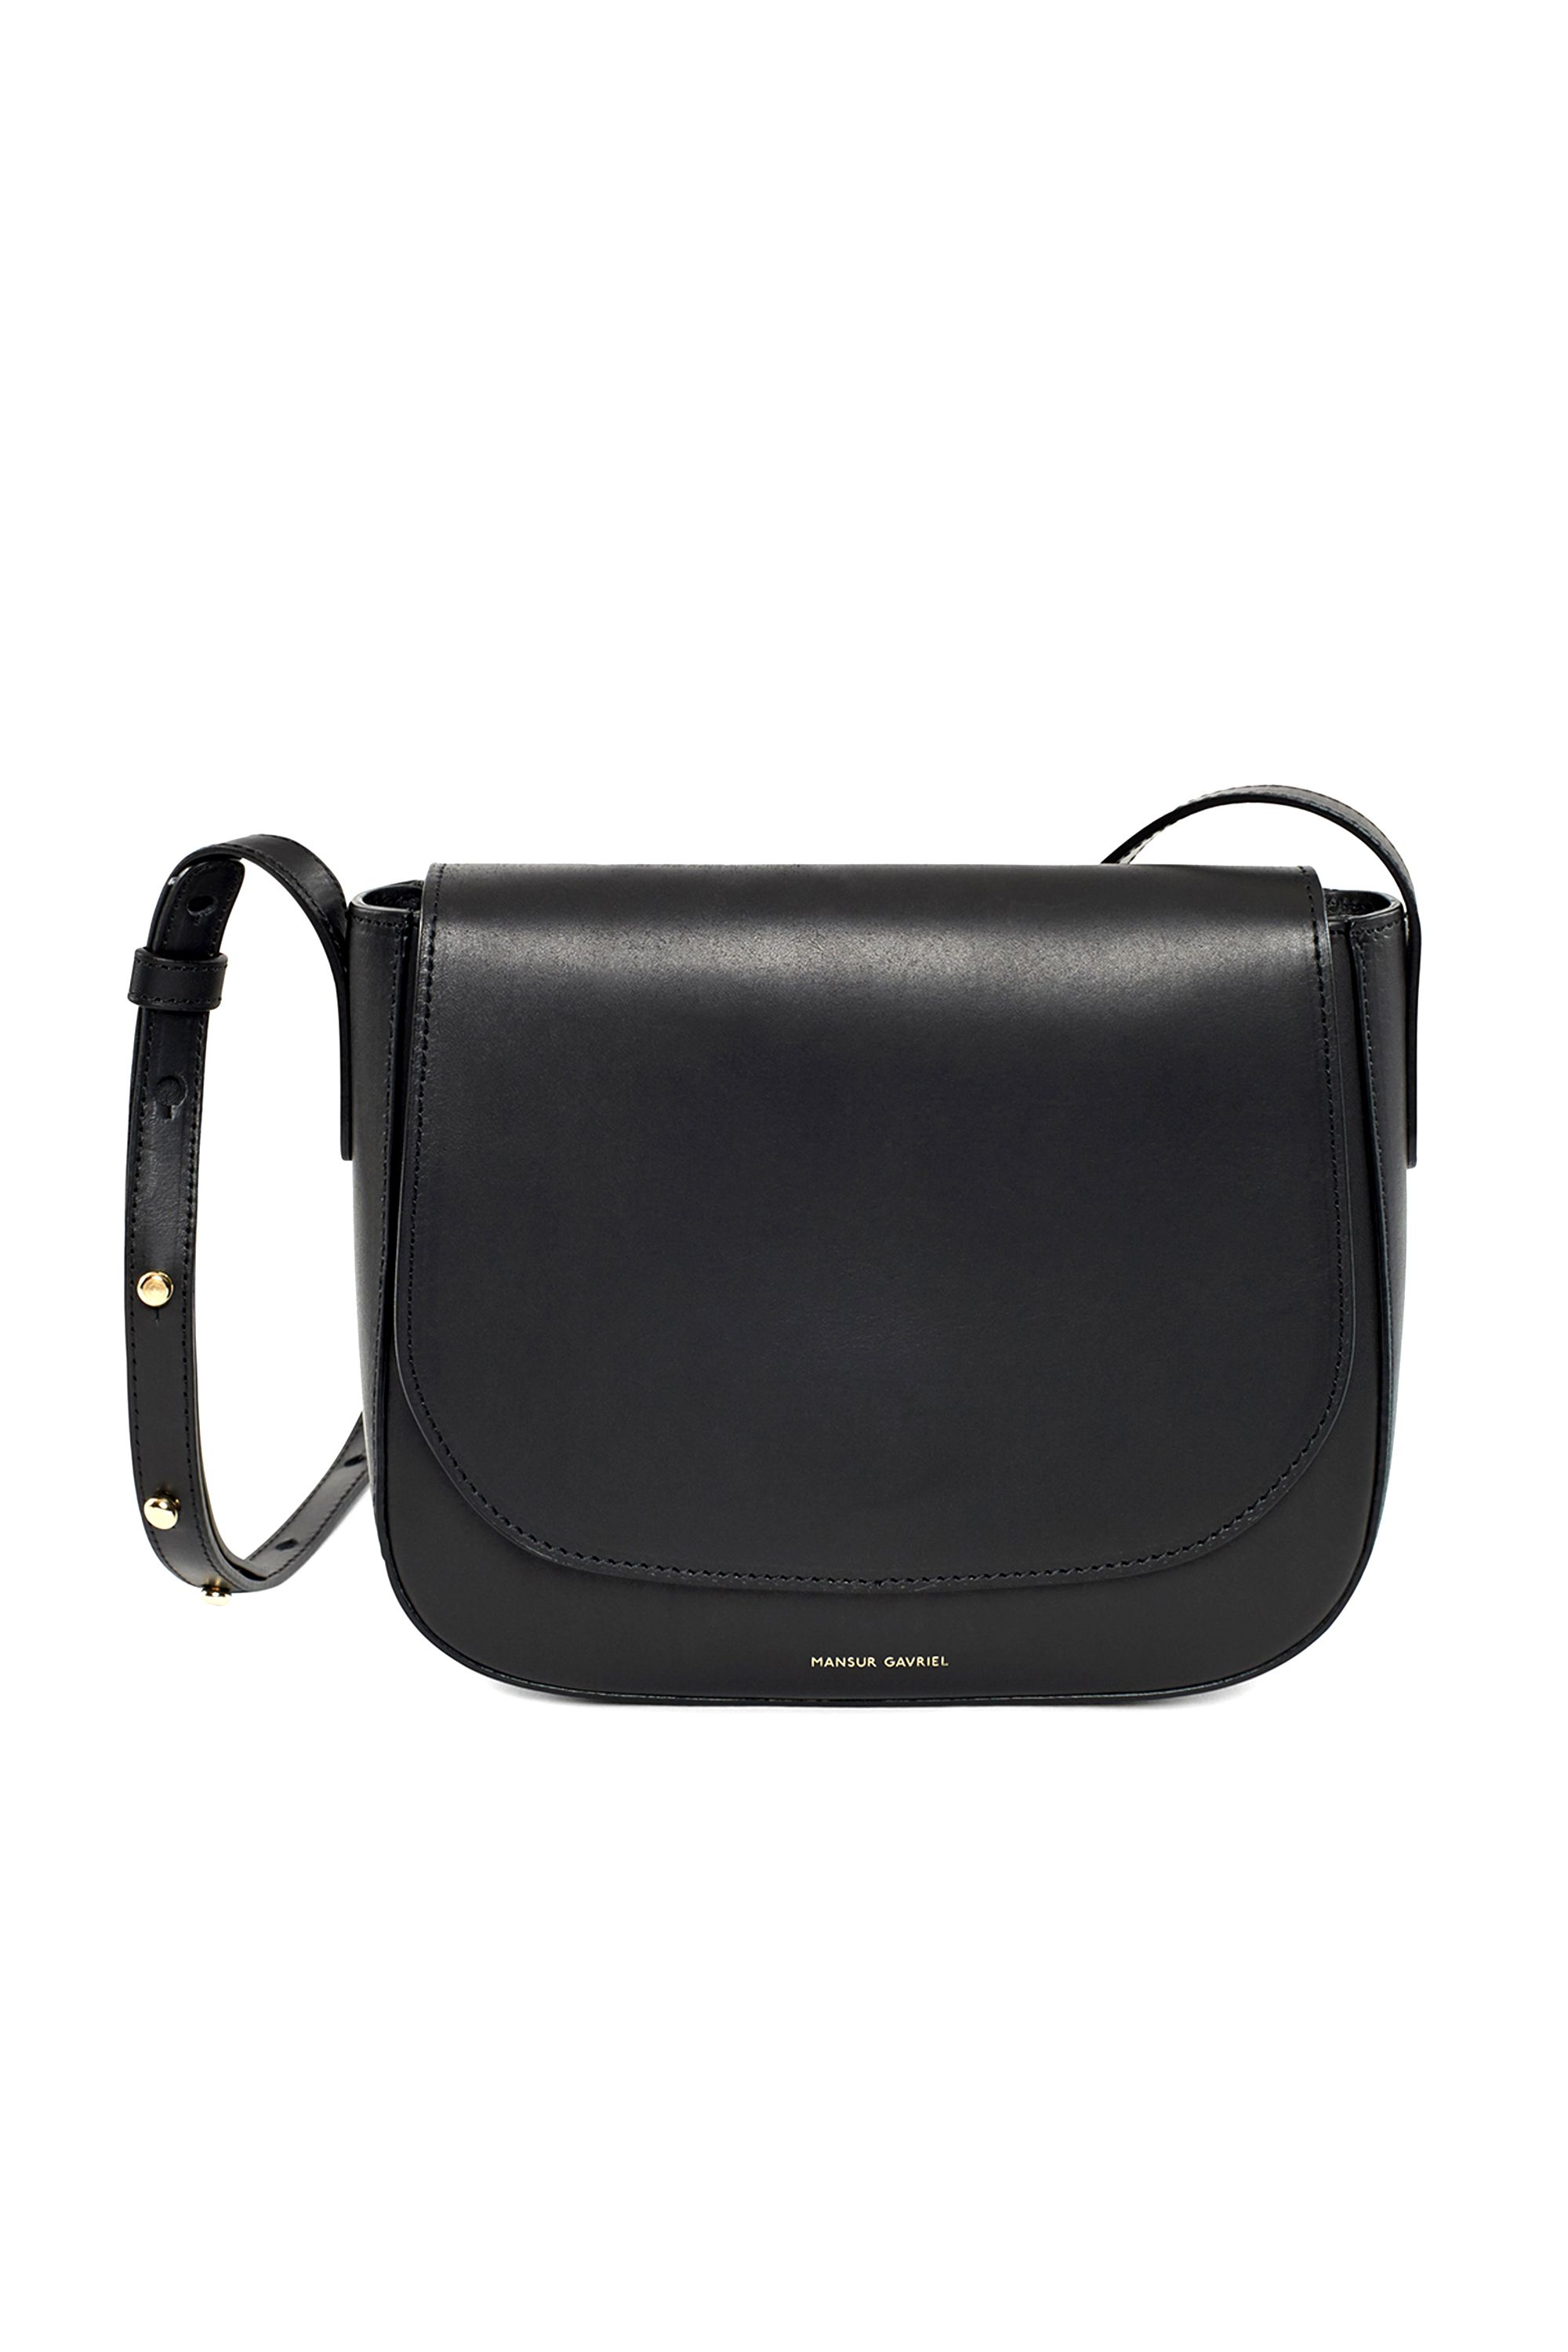 One Of 20 Black Crossbody Bags That Work With Everything Mansur Gavriel